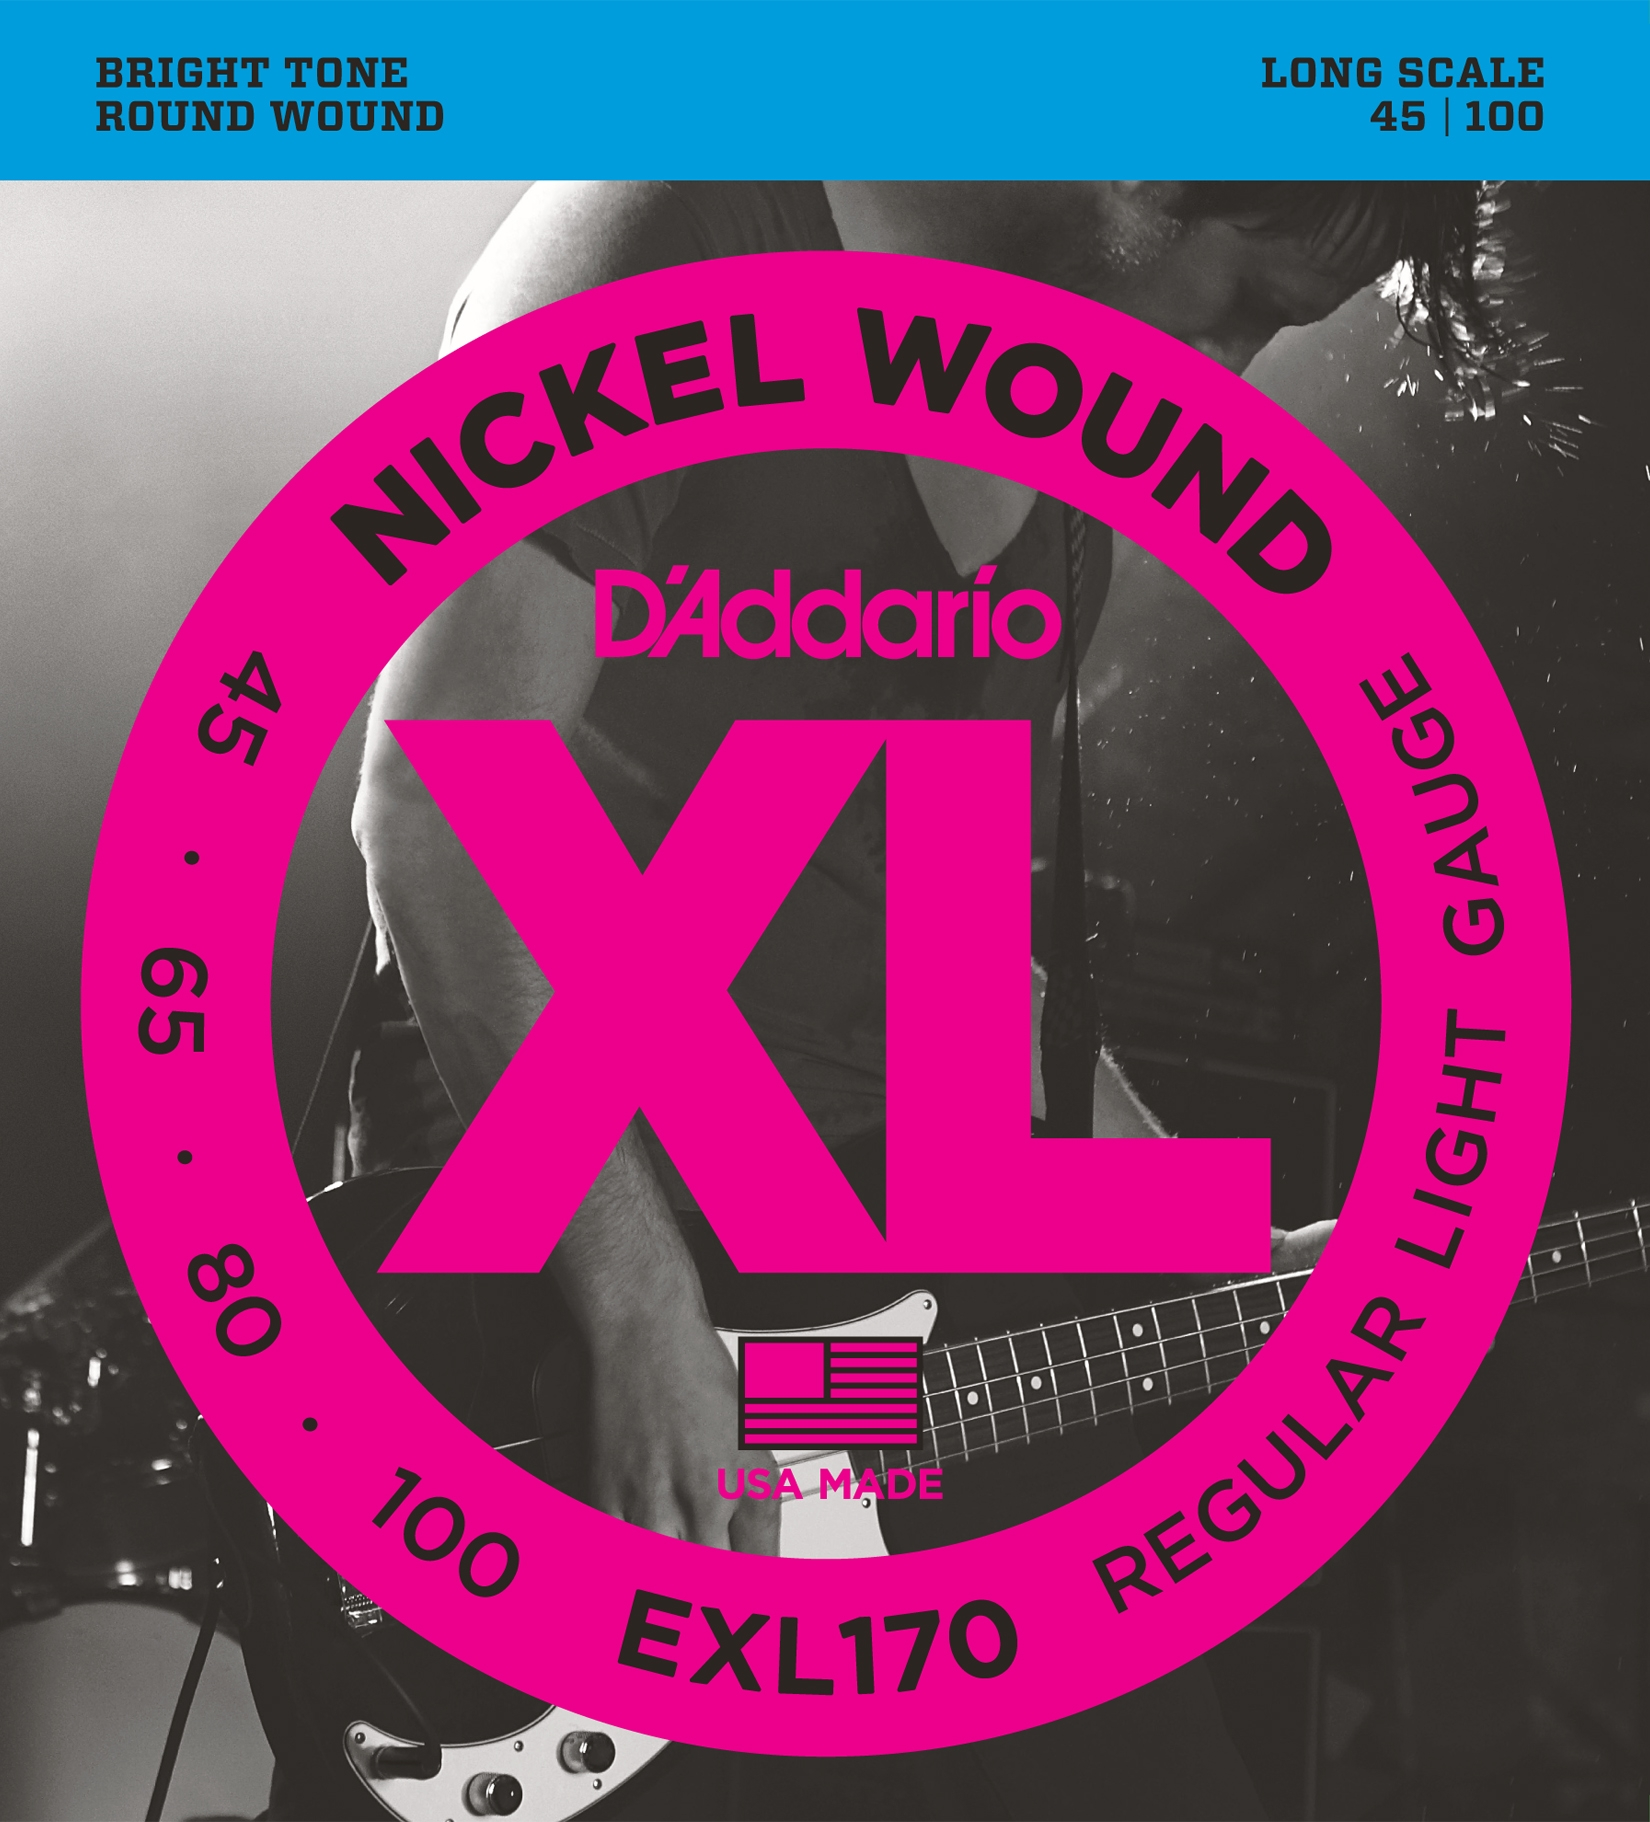 D'Addario EXL170 Nickel Wound Bass Guitar Strings, Light, 45-100, Long Scale by D'Addario Woodwinds (Image #1)